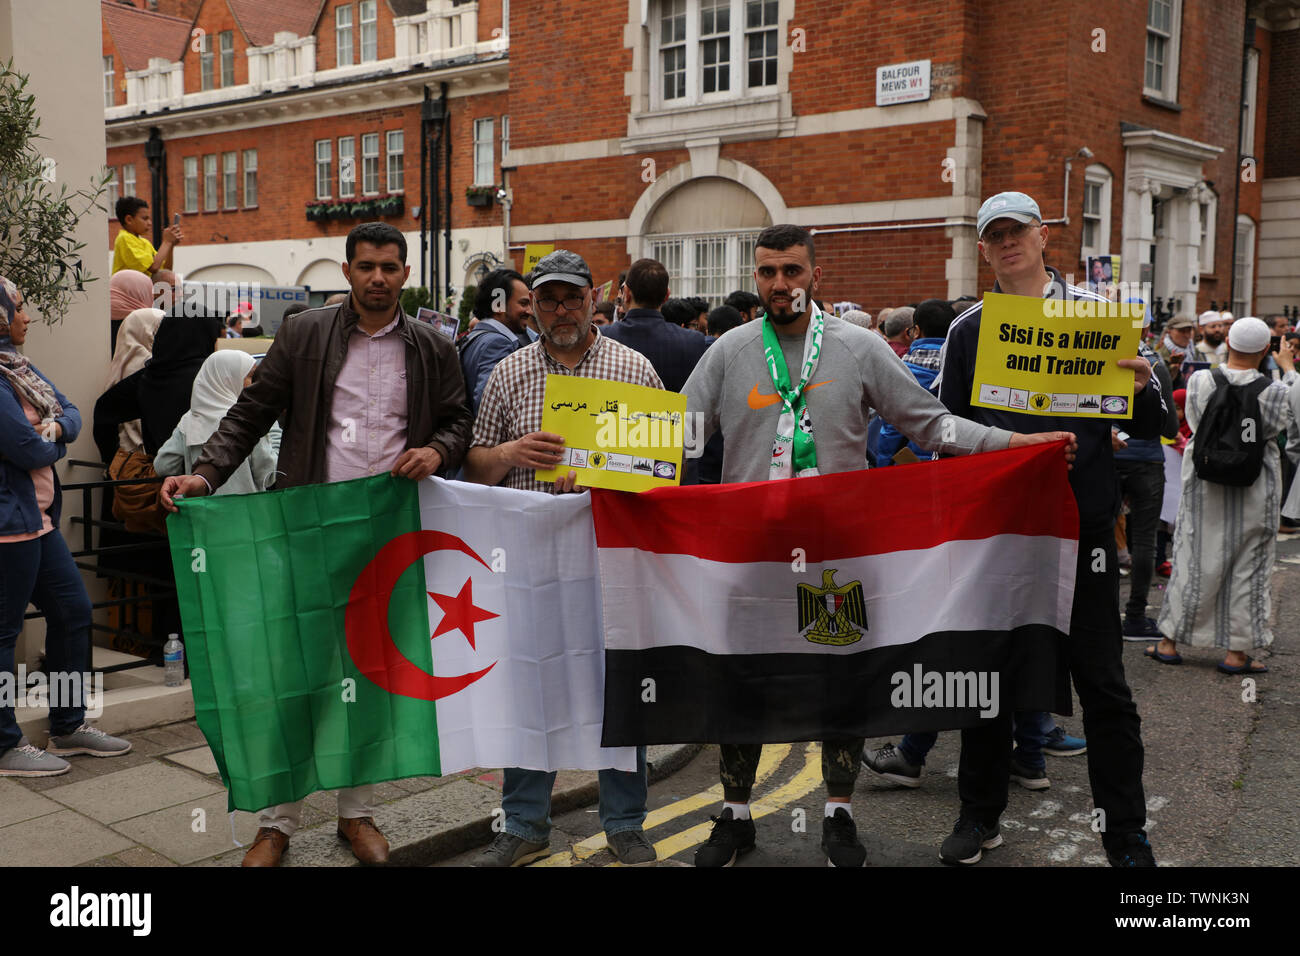 London, UK. 21st June 2019.  Protesters in front of the Egyptian embassy in London, with the Algerian and Egyptian flags, in remembrance of Morsi, who recently collapsed in court in Cairo. Credit: Joe Kuis / Alamy News - Stock Image